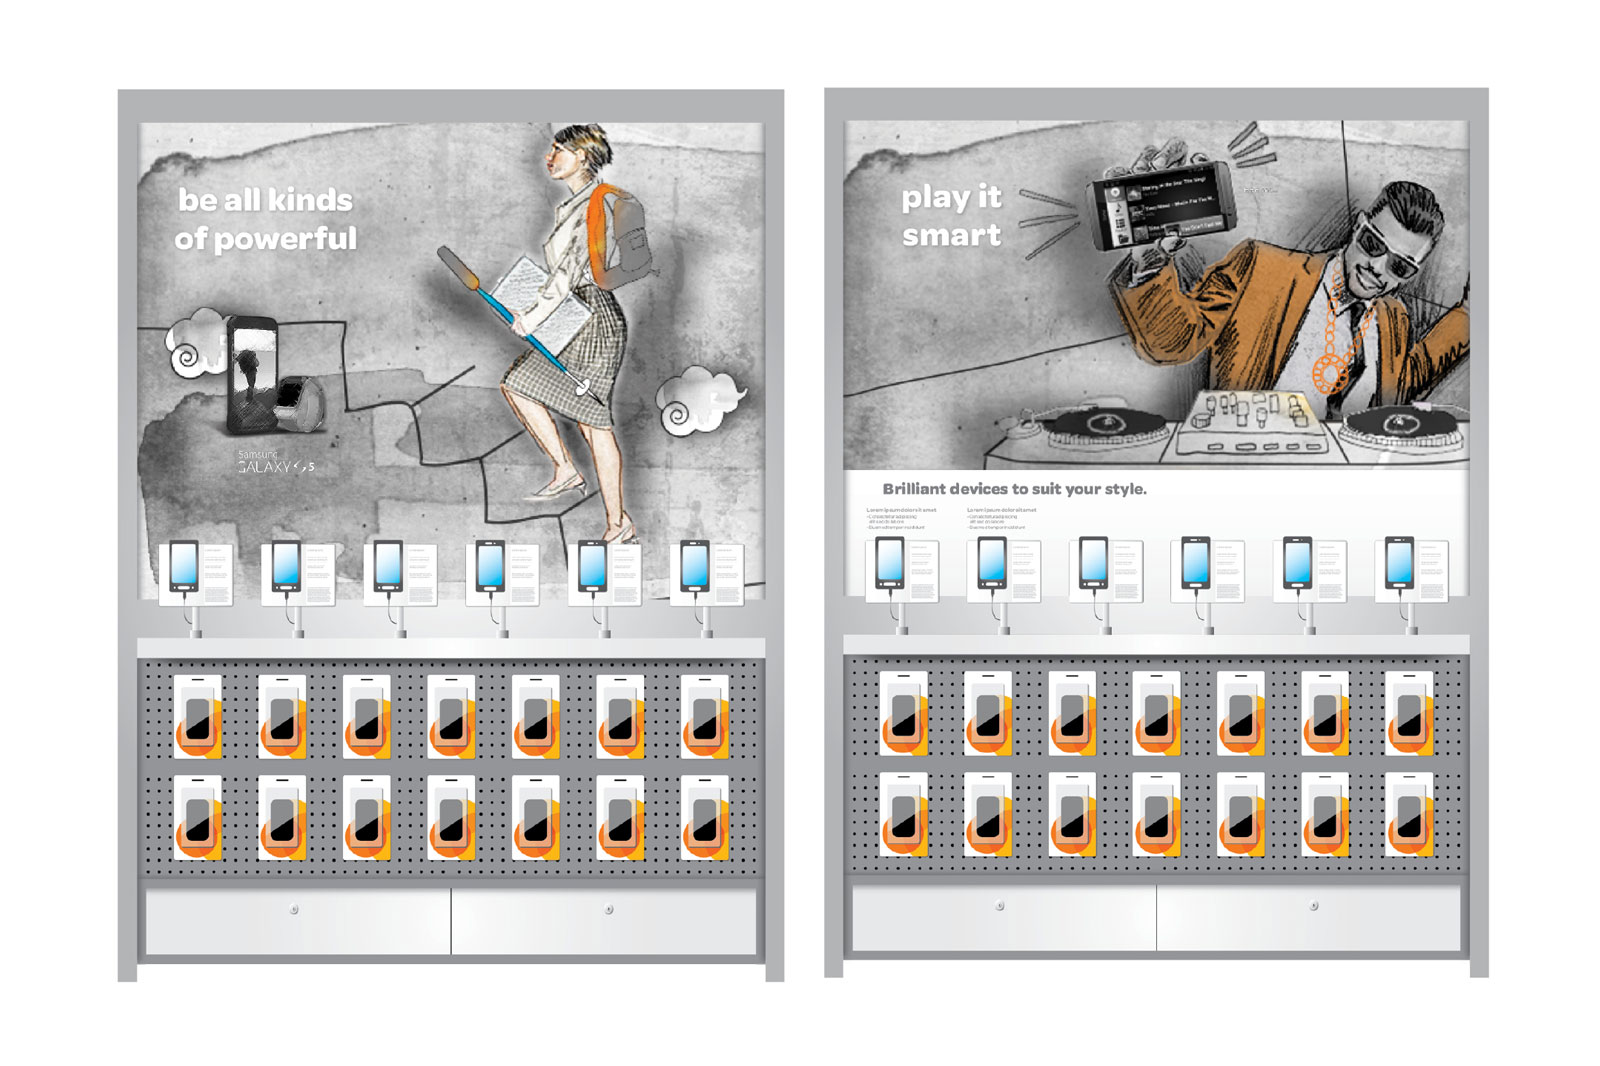 AT&T Retail Experience - Product display concept